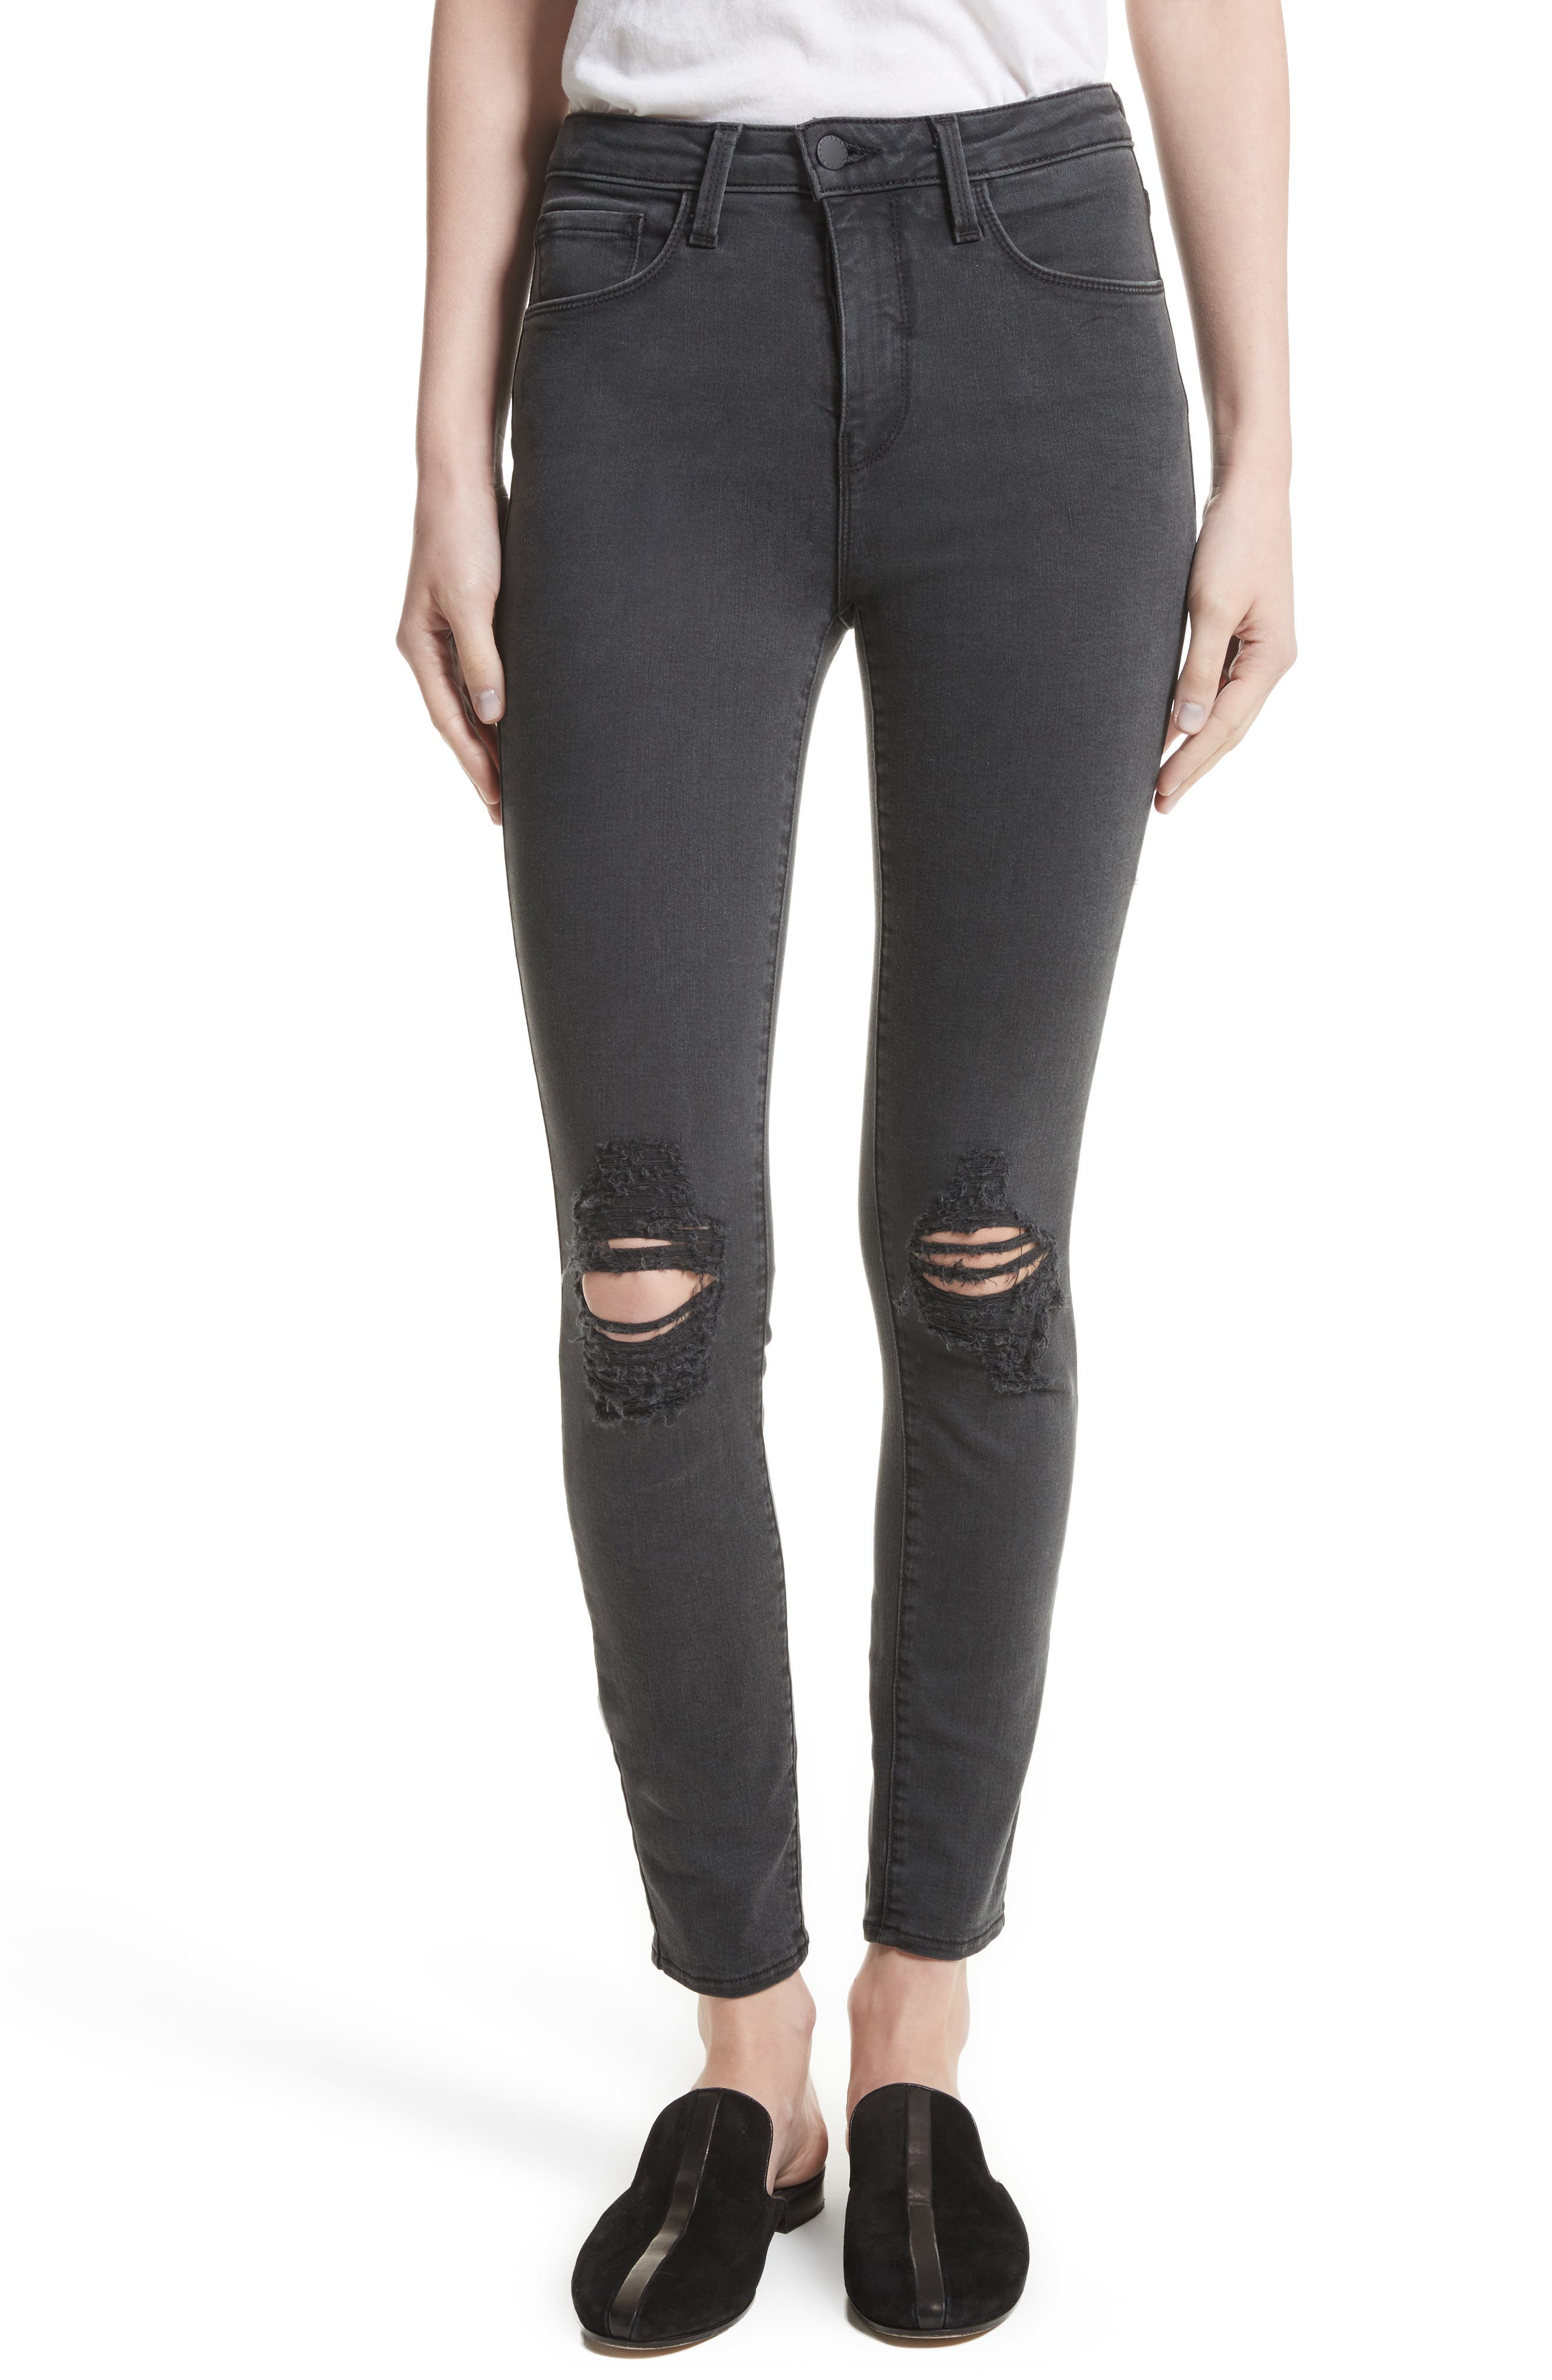 Alternate Image 1 Selected - L'AGENCE Margot Ripped High Waist Skinny Jeans (Coal Destruct)